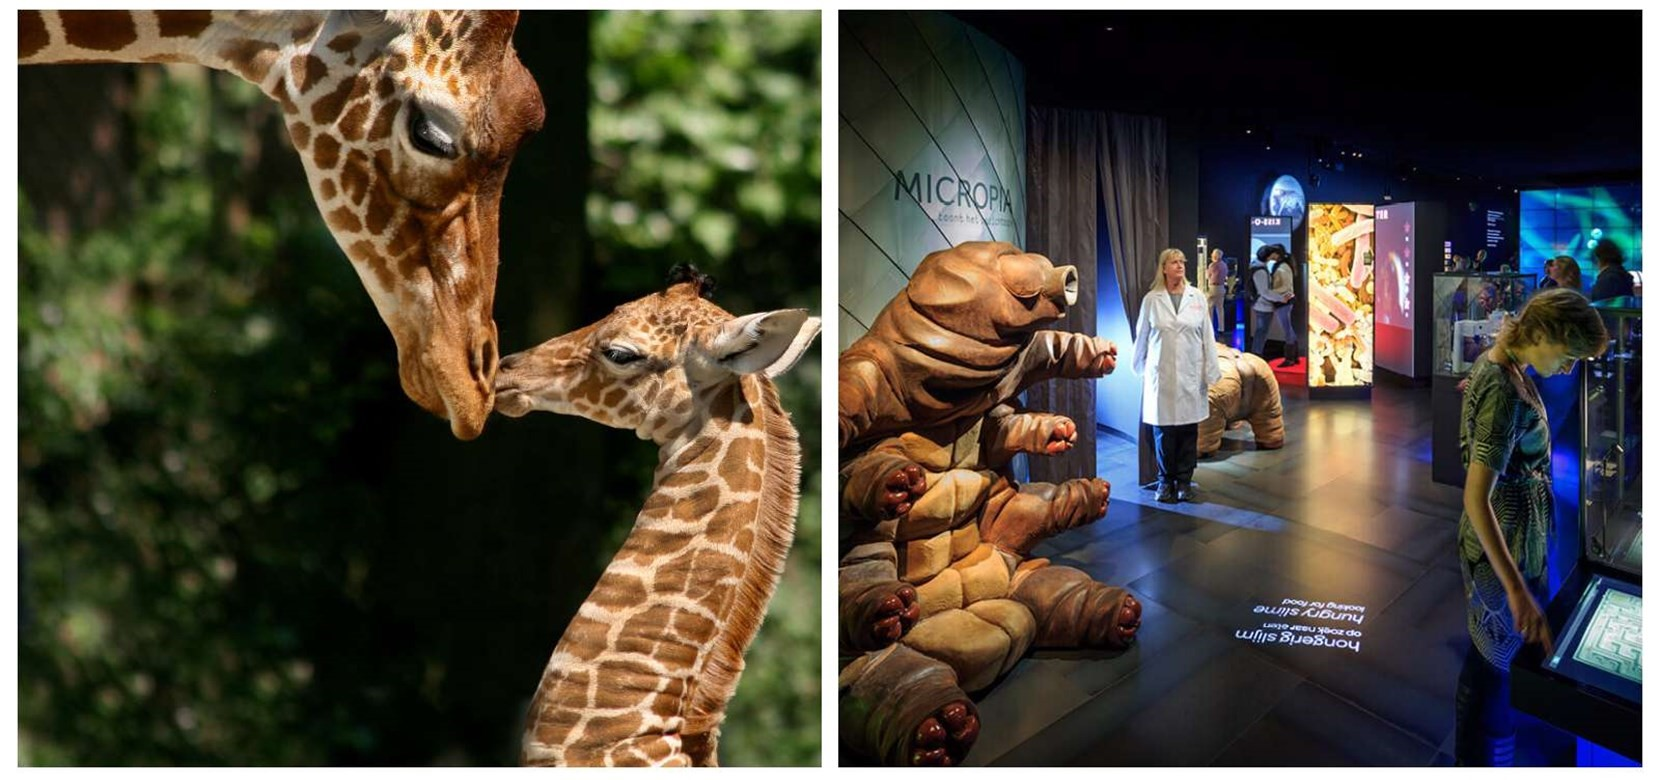 Artis Royal Zoo + Micropia